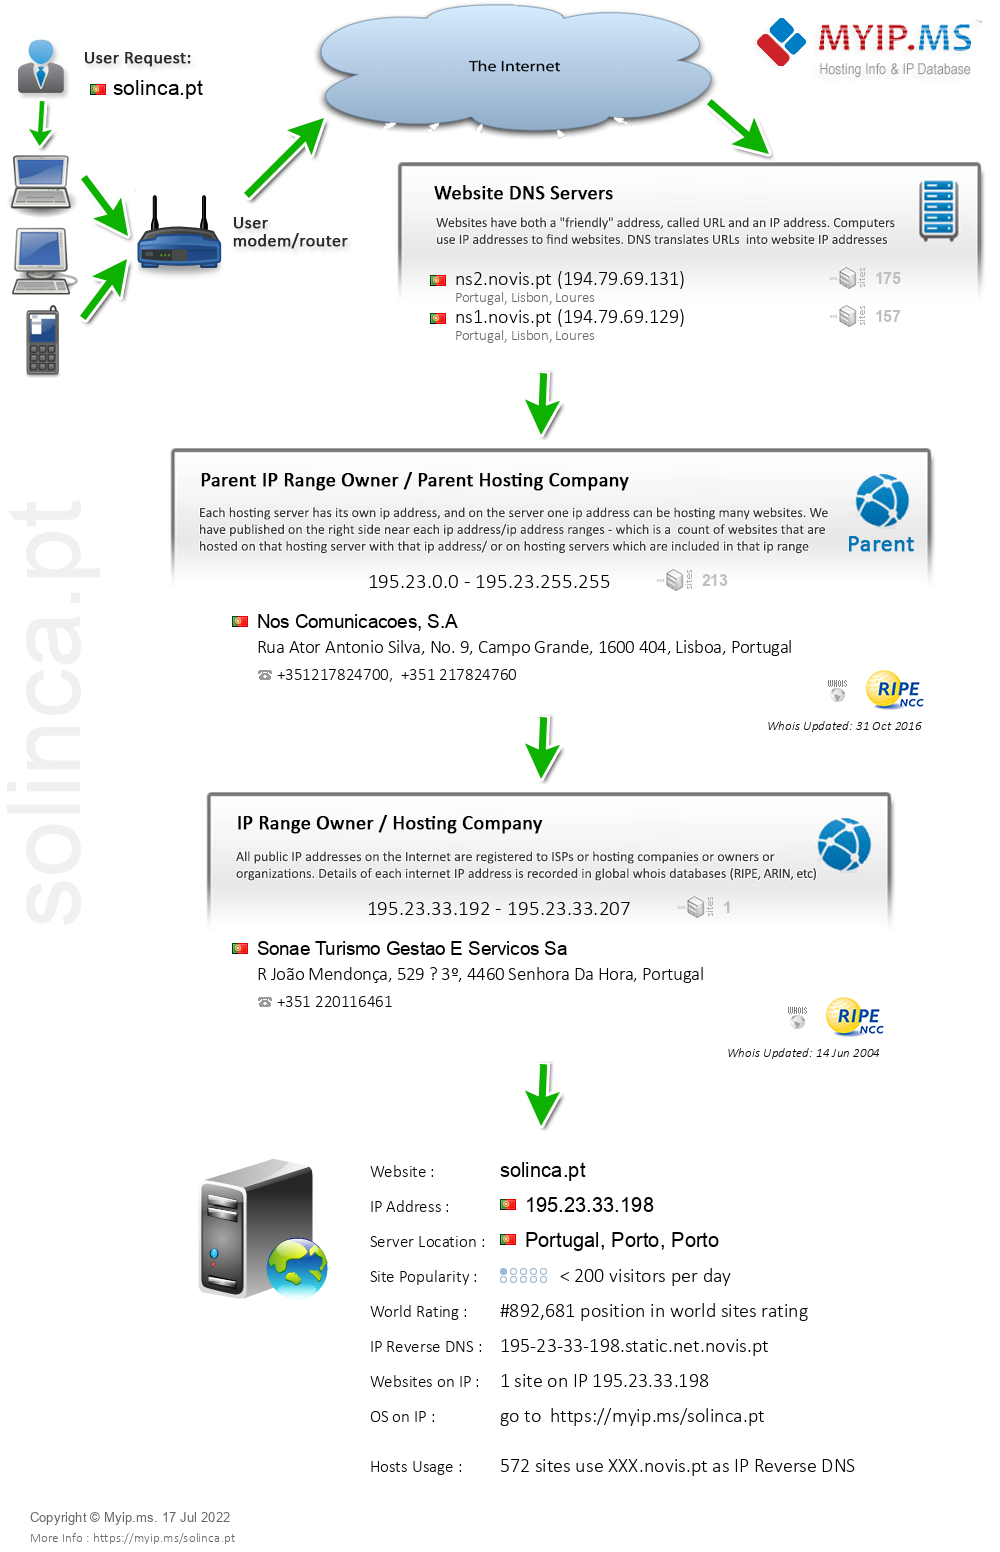 Solinca.pt - Website Hosting Visual IP Diagram